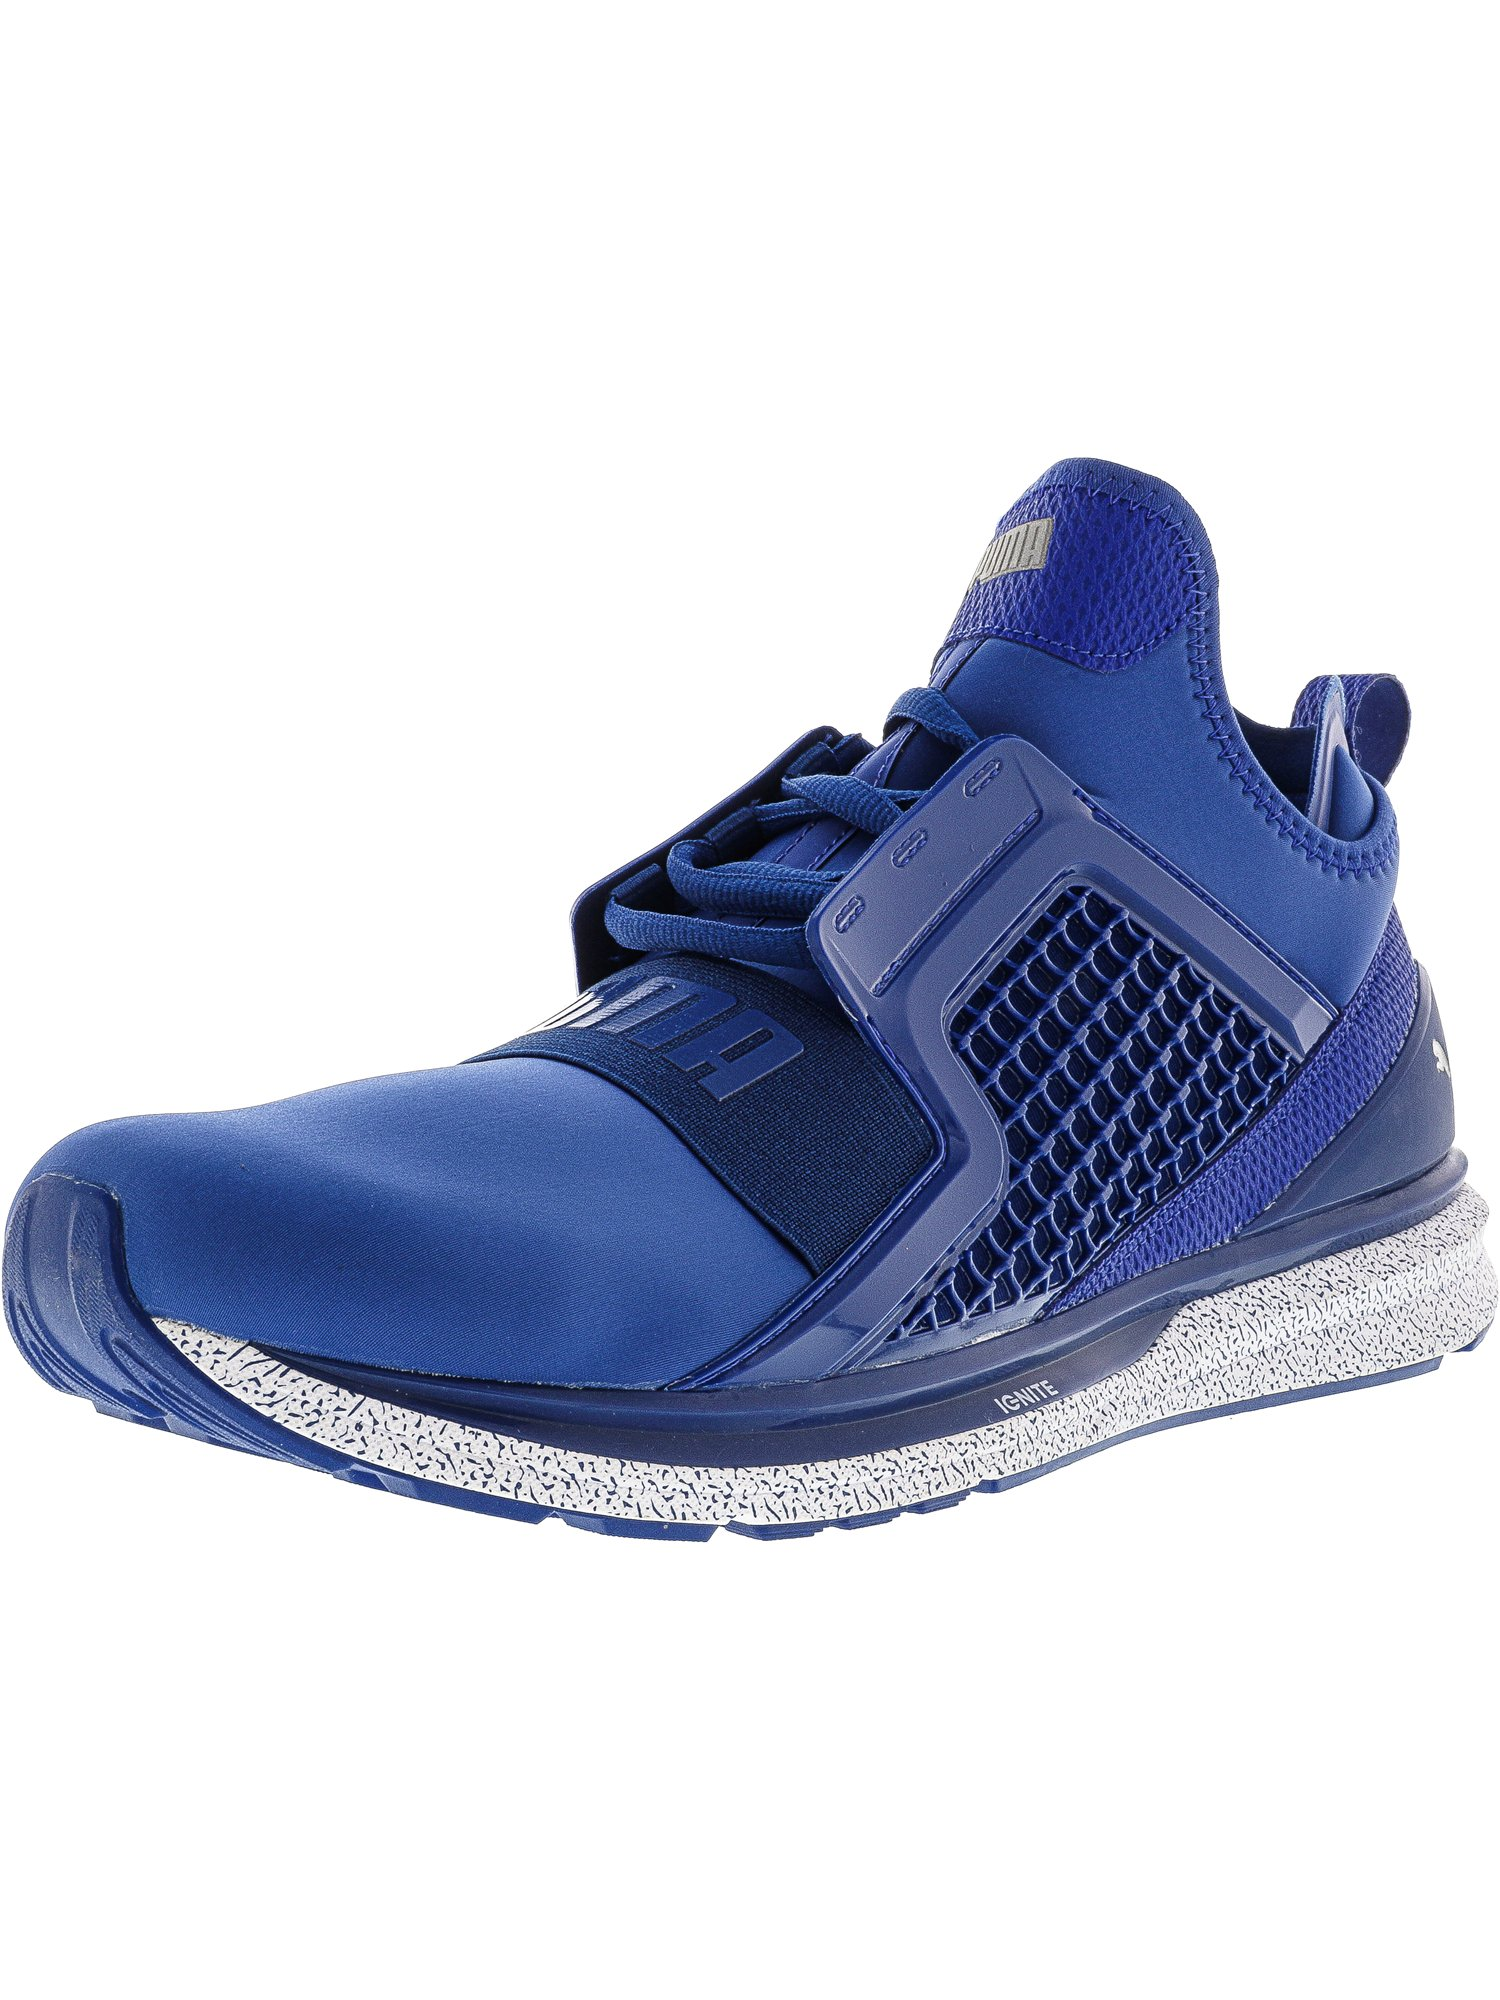 Puma Men's Ignite Limitless True Blue Ankle-High Basketball Shoe 13M by Puma